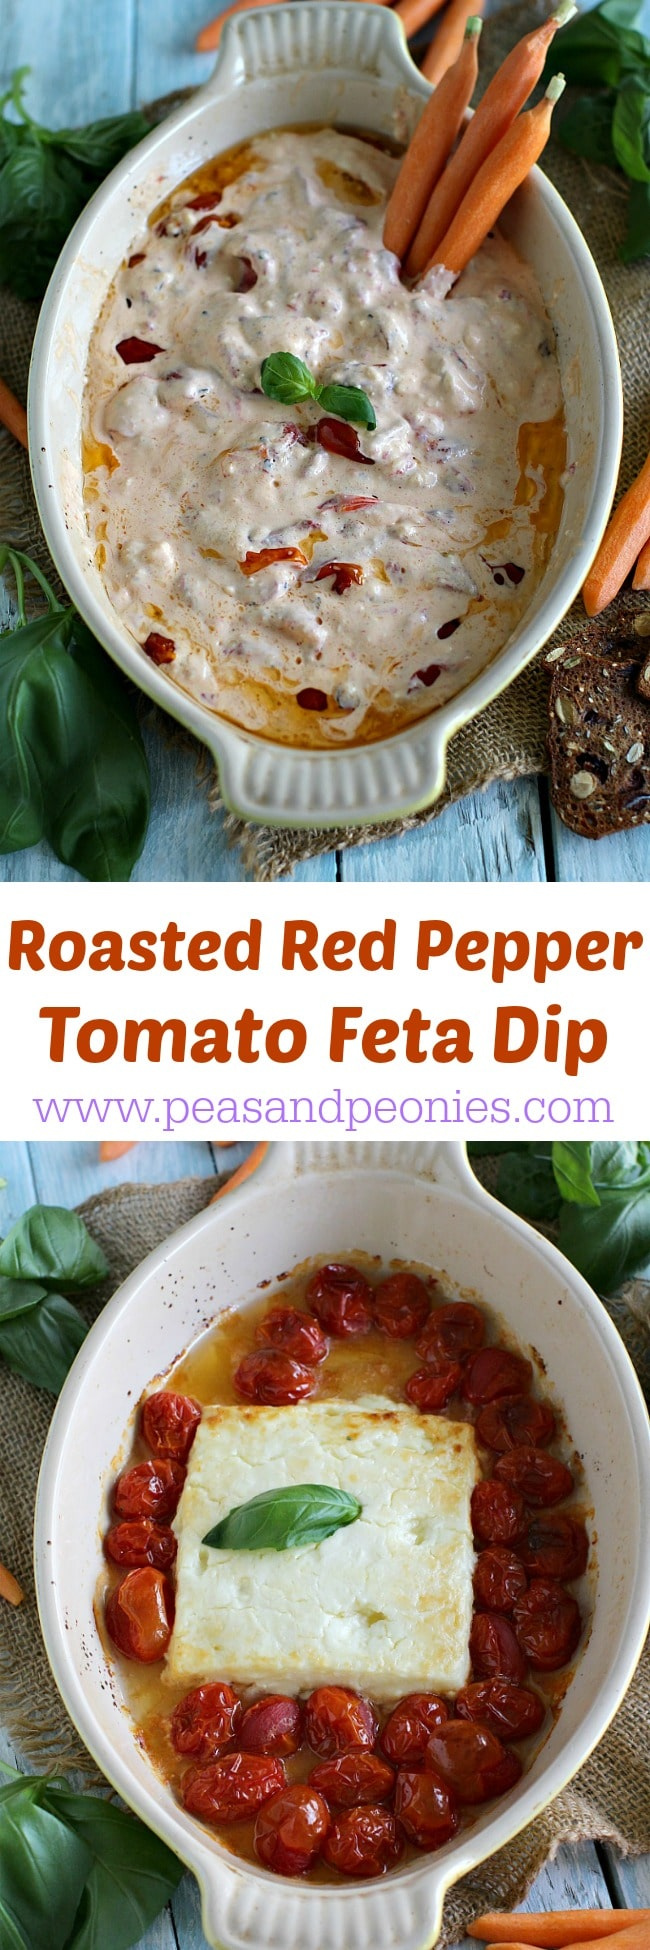 Five Ingredients only! Easy to make, addicting and creamy feta dip is loaded with sweet and tender roasted red bell peppers and juicy roasted mini tomatoes.